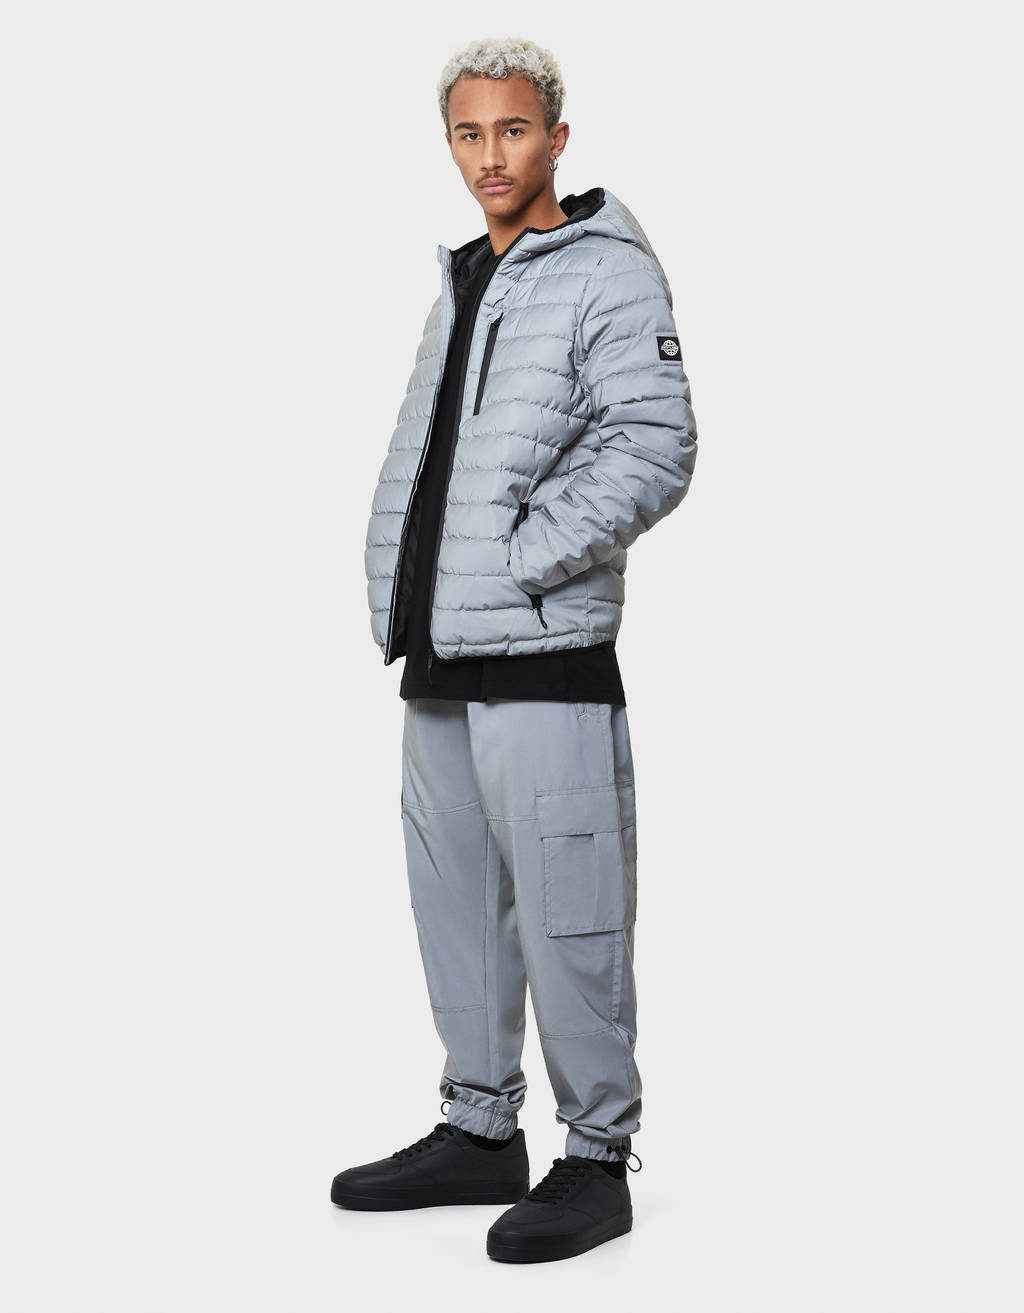 Reflective cargo trousers